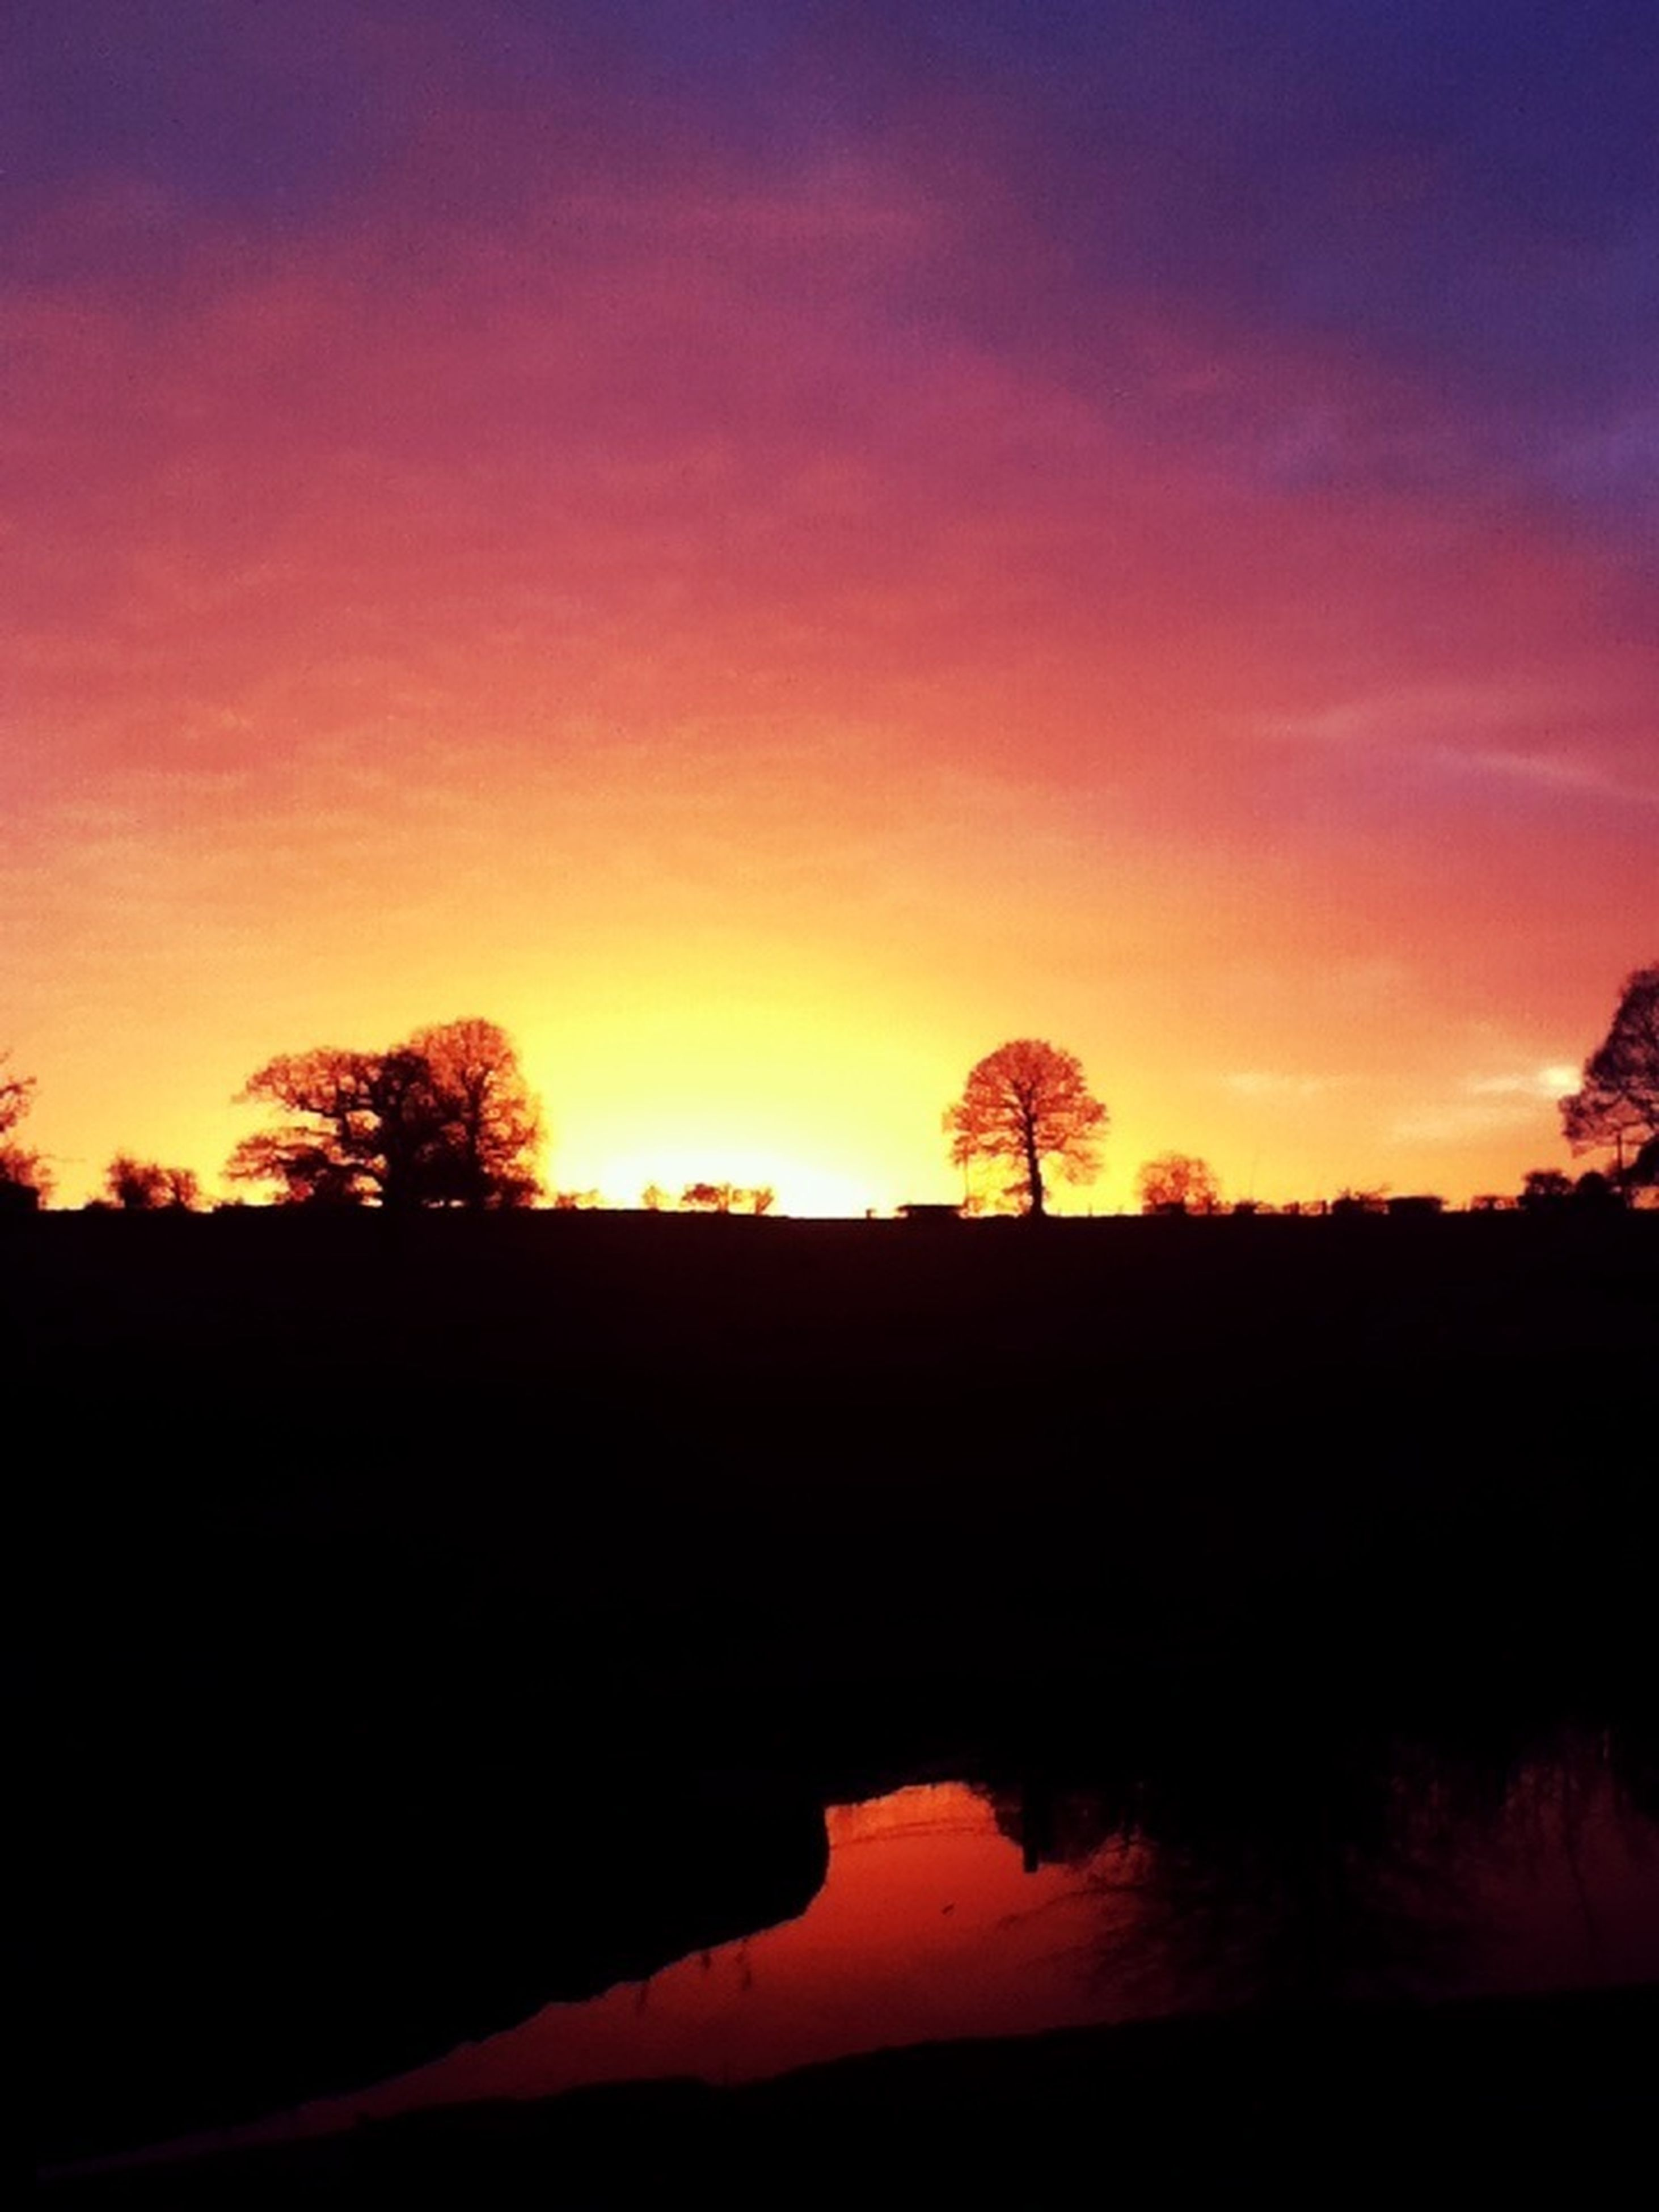 sunset, silhouette, scenics, orange color, tranquil scene, beauty in nature, tranquility, sky, tree, idyllic, nature, dramatic sky, cloud - sky, landscape, dark, water, outdoors, moody sky, cloud, majestic